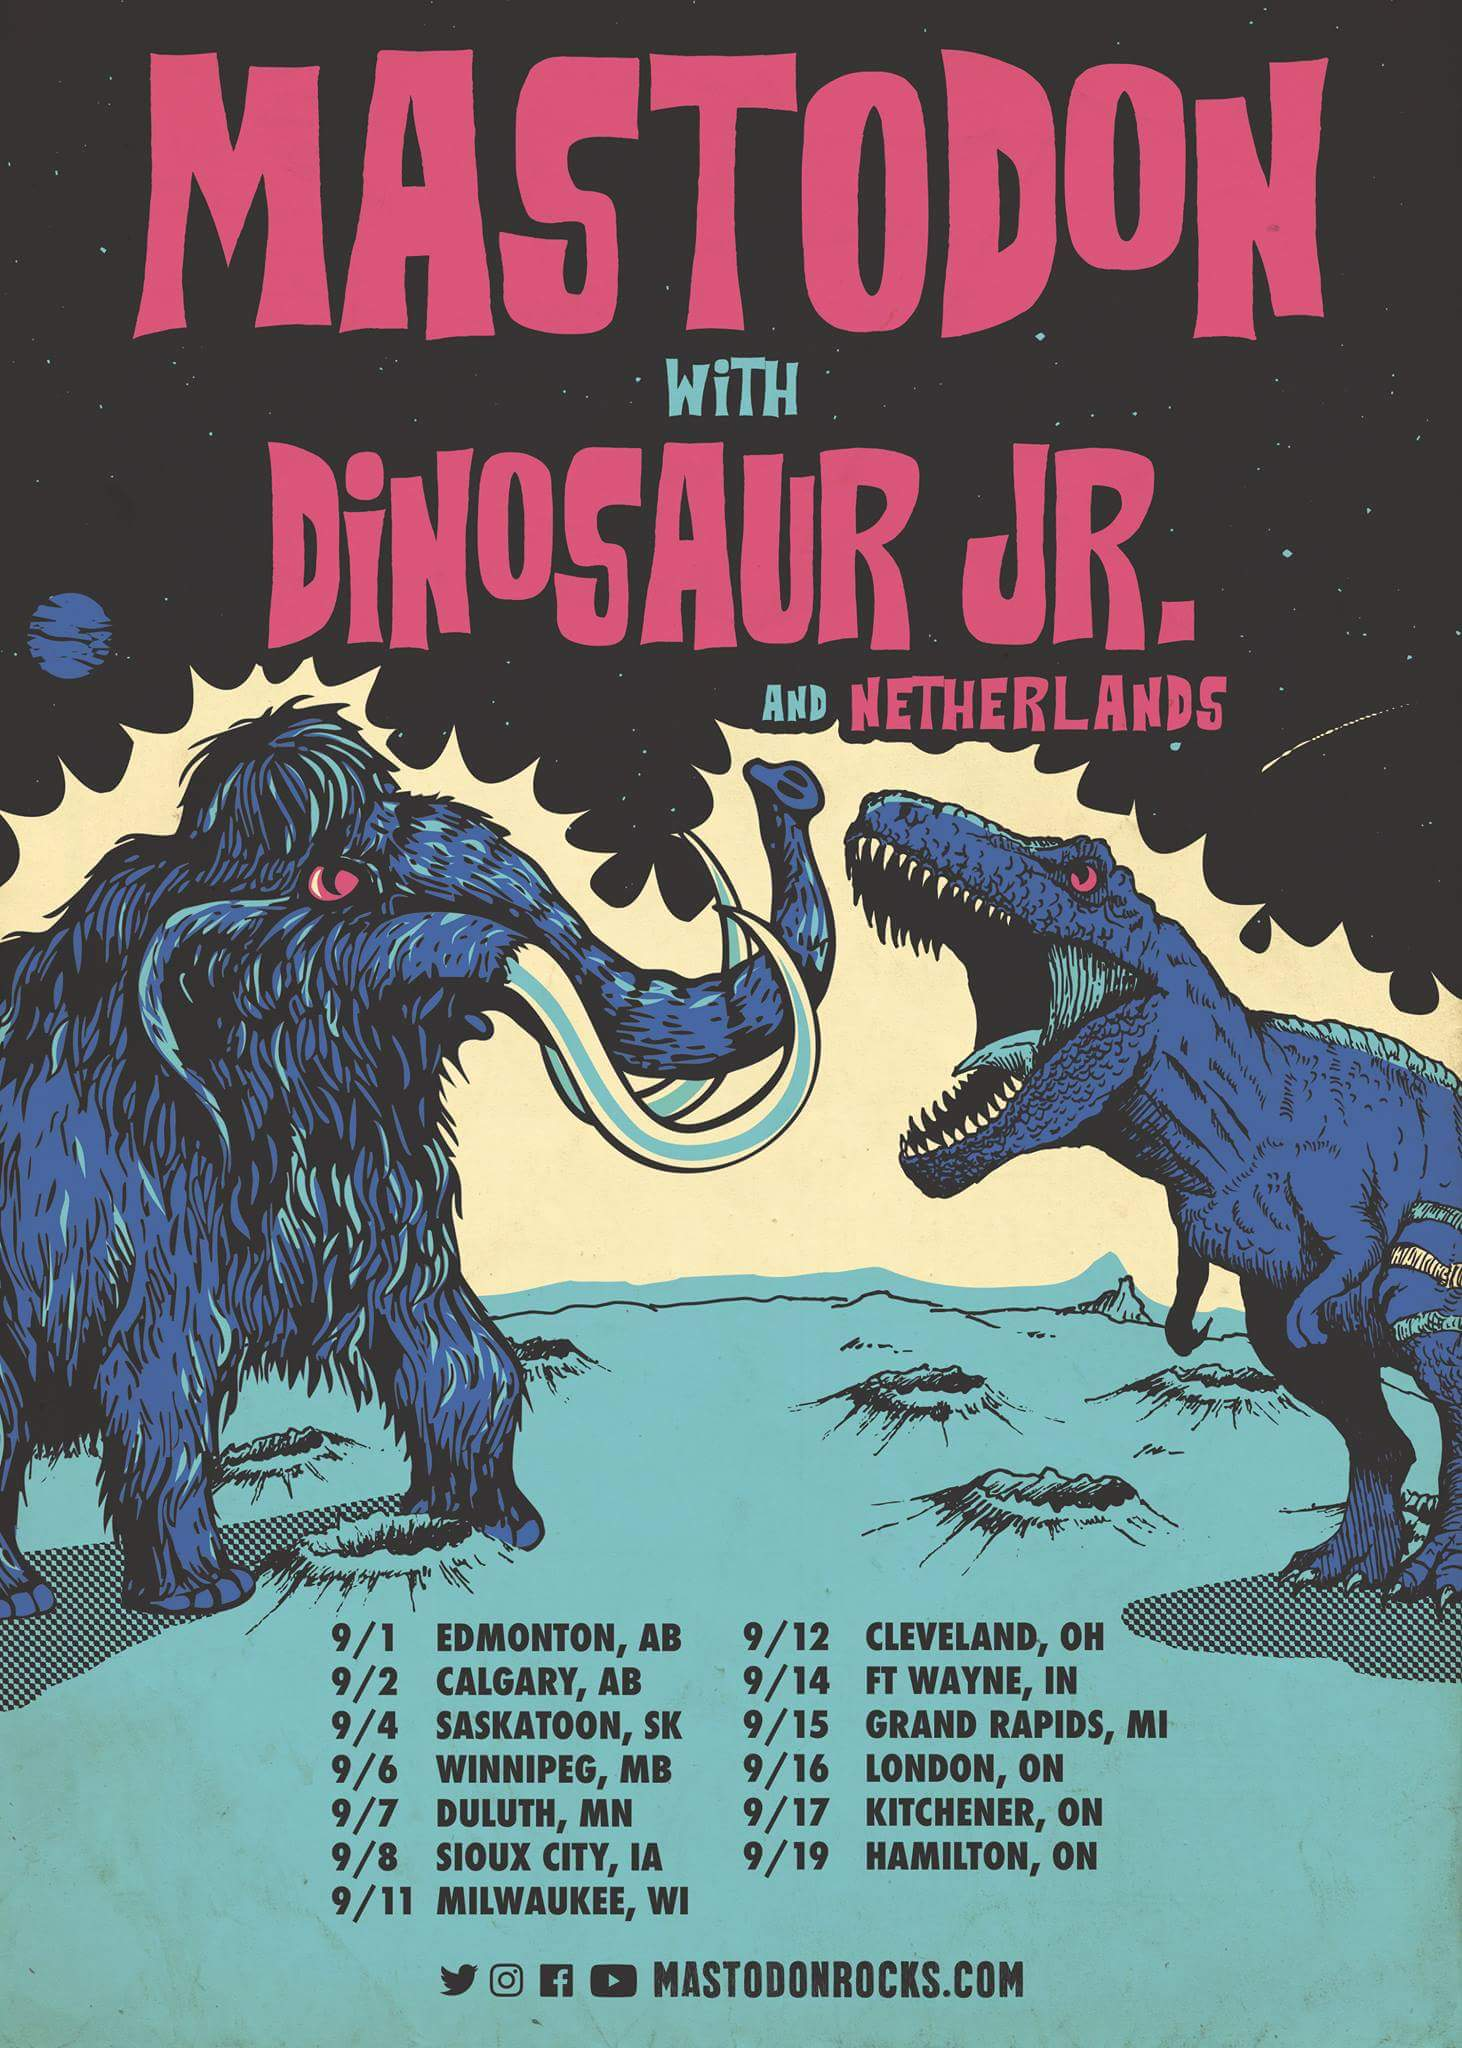 Mastodon Cancel Tour With Dinosaur Jr. & Netherlands | Metal Anarchy